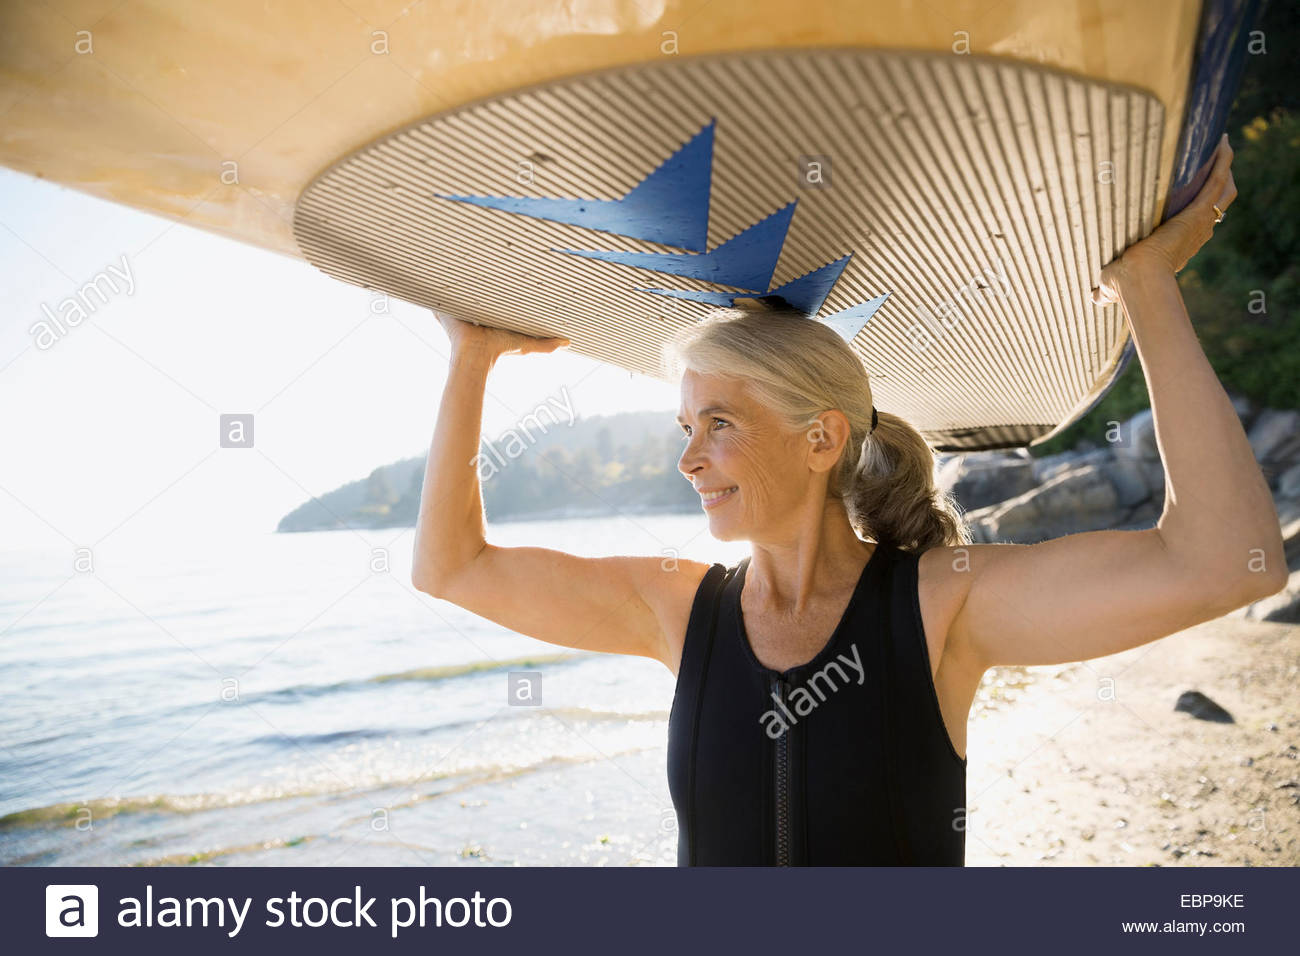 Senior woman holding paddle board passage on beach Photo Stock